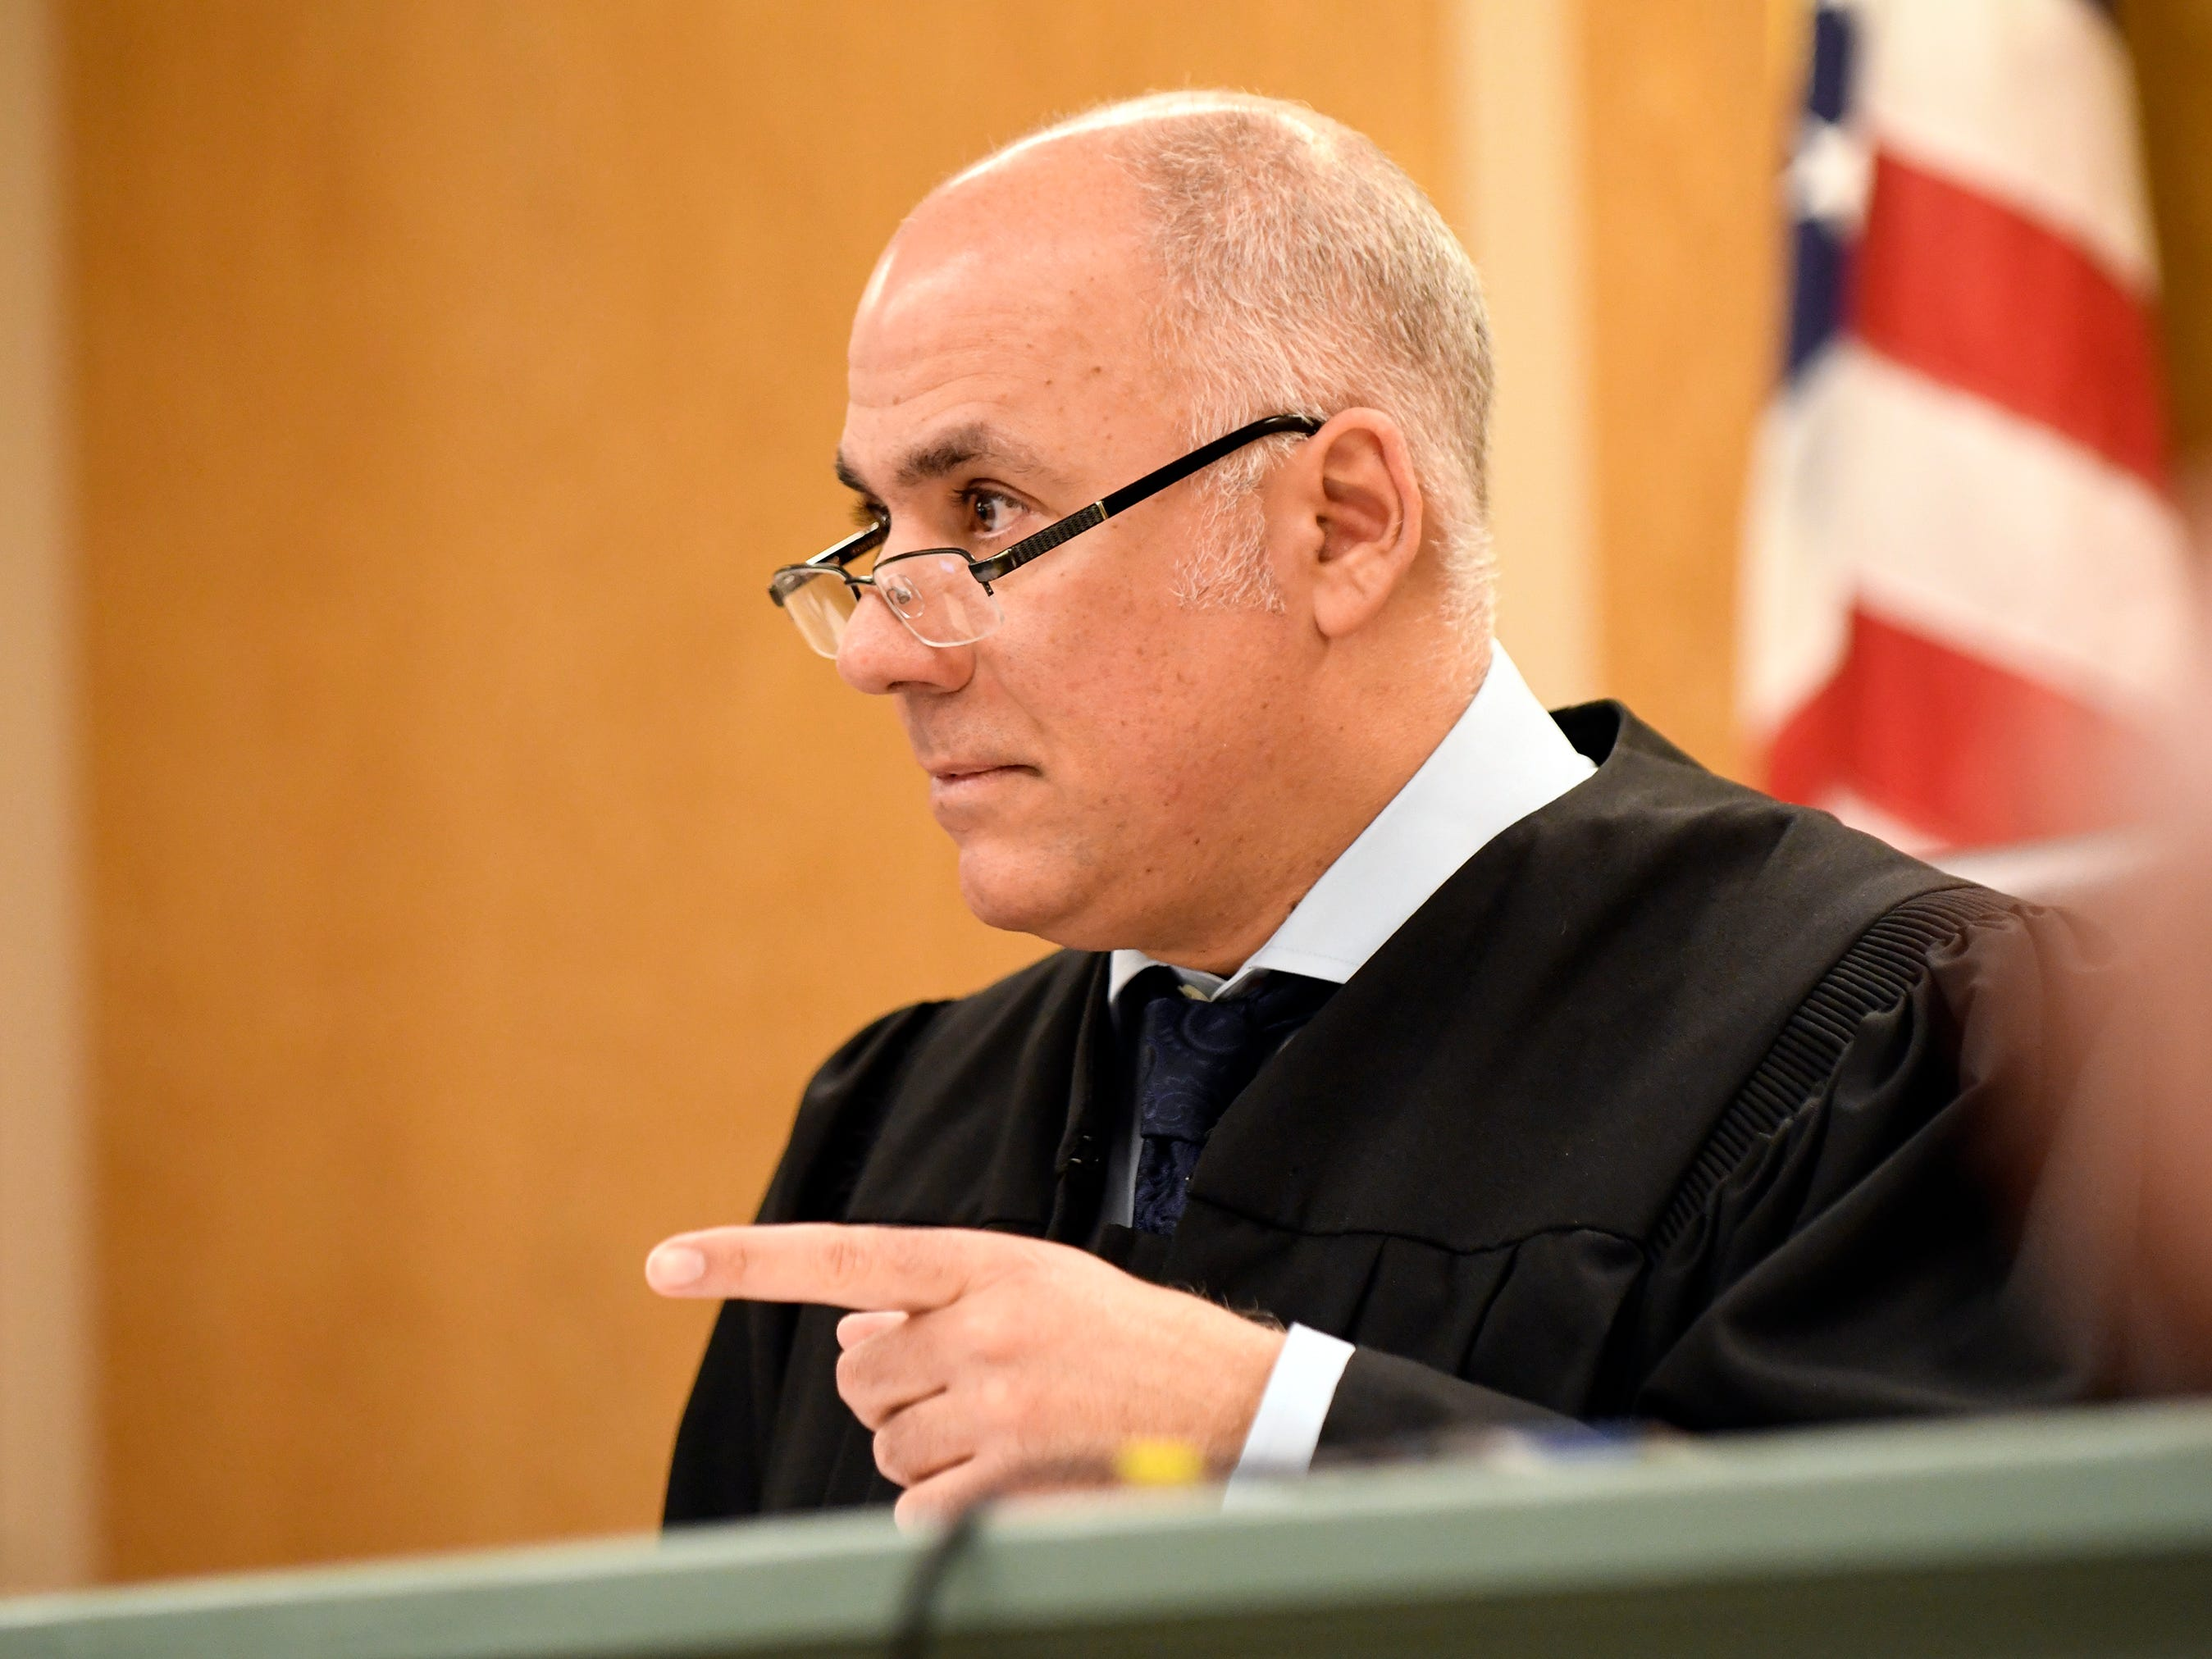 Judge Michael Silvanio presided in Cumberland County Superior Court as three people accused in connection with the fatal shooting of a former Millville youth football coach appeared before him on Monday, March 4, 2019.